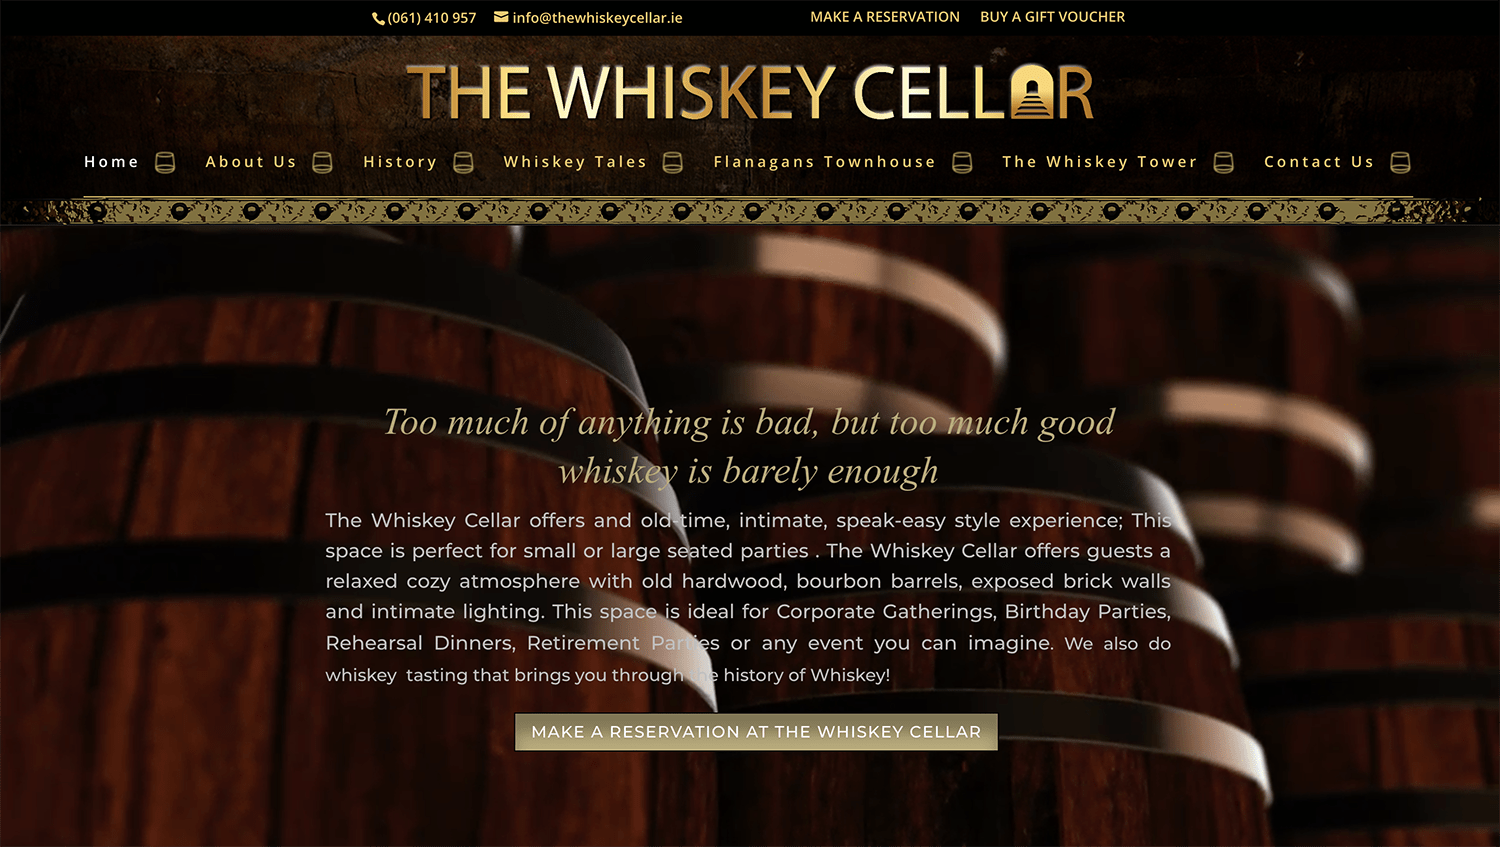 The Whiskey Cellar